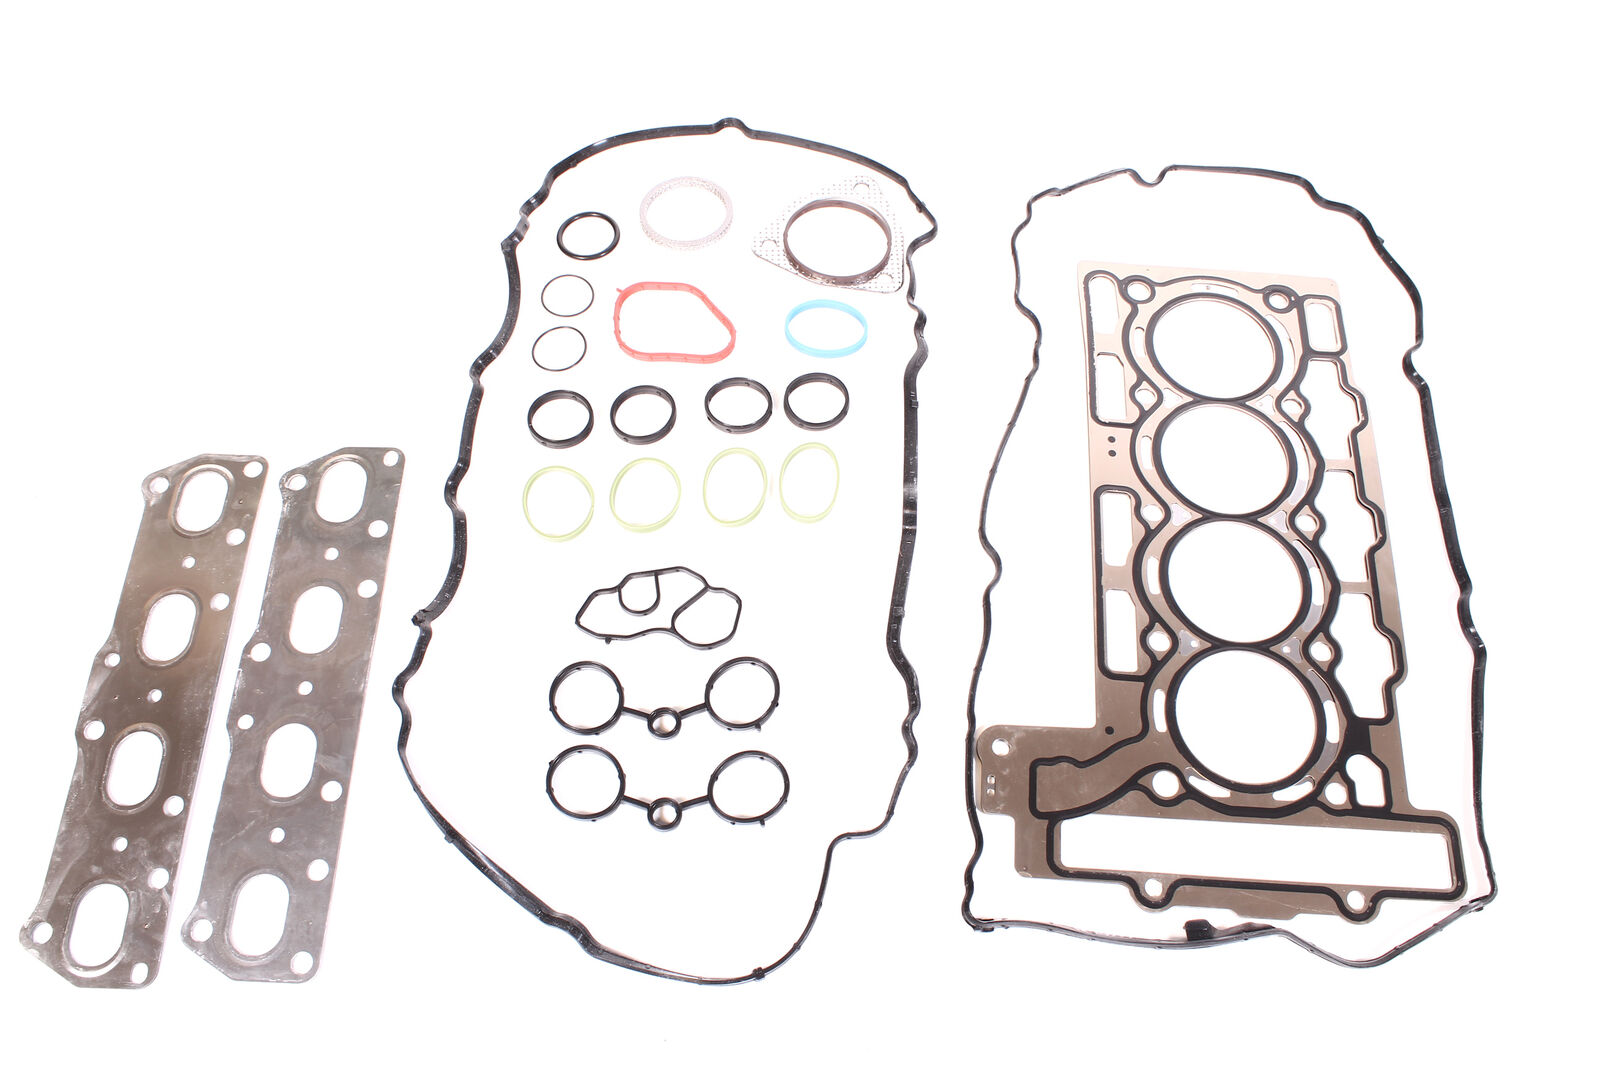 Gasket set-cylinder head gasket Mini one 1.6 N12B16A N16B16A NEW